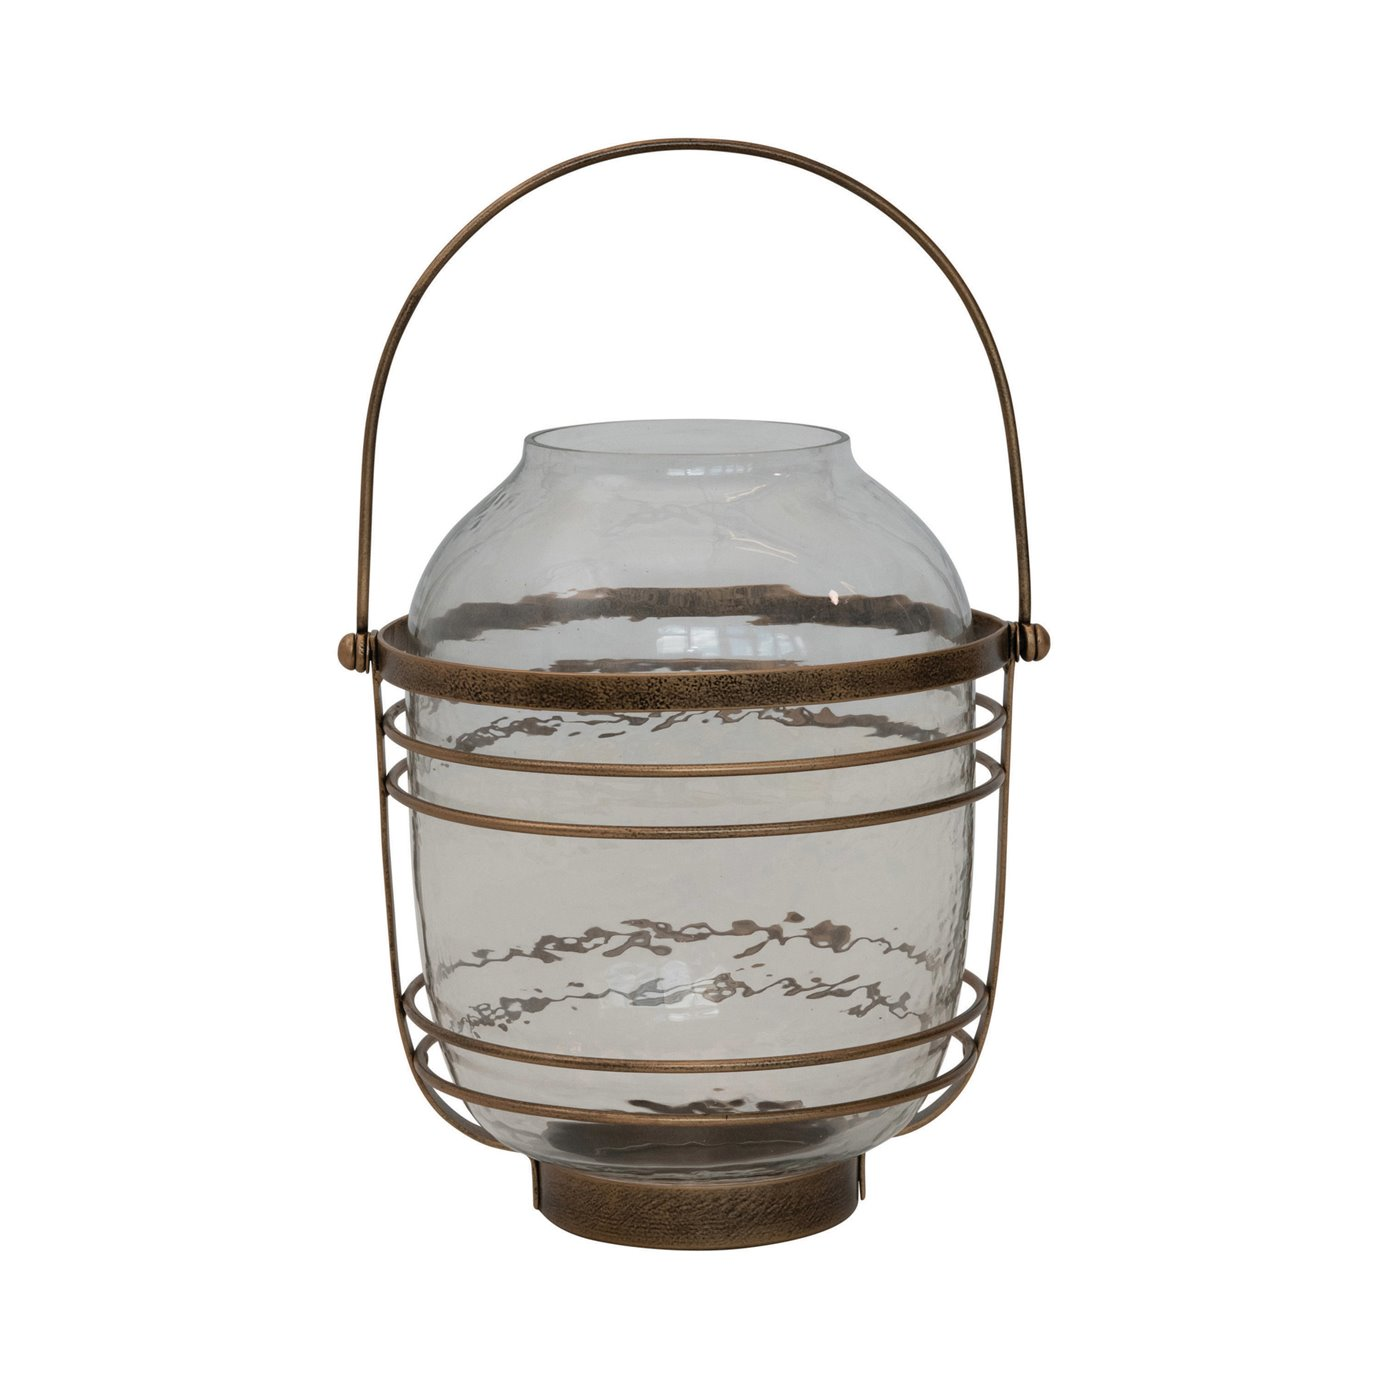 Metal & Glass Lantern with Handle, Antique Brass Finish